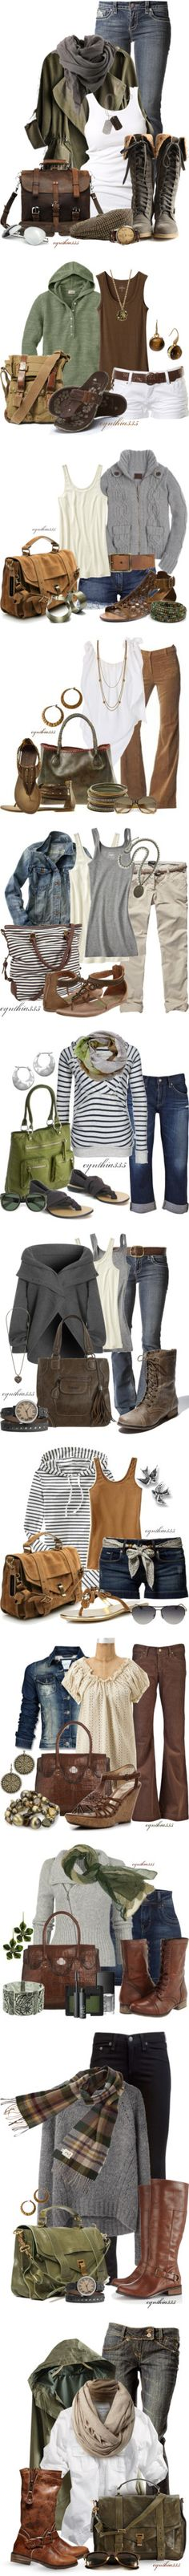 """Earthy Comfort"" by cynthia335 on Polyvore"